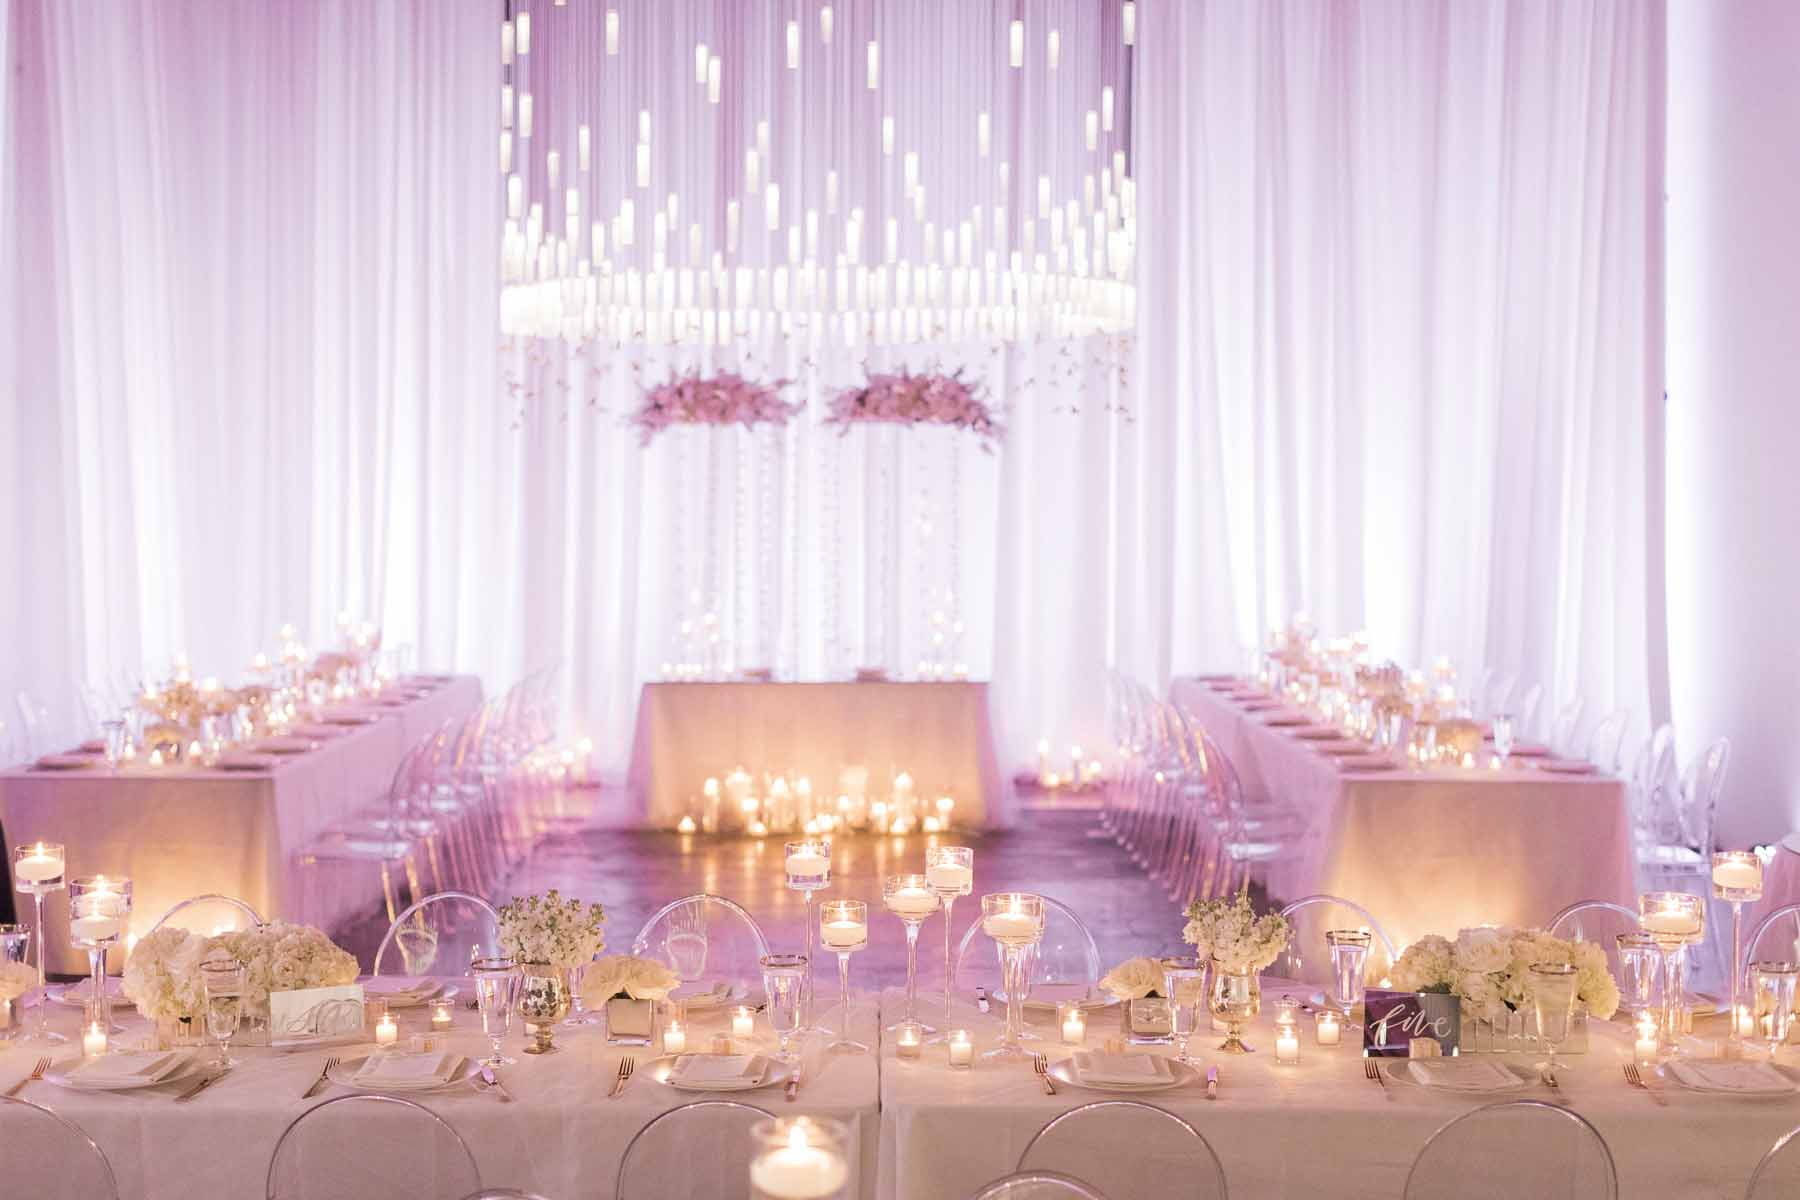 Beautiful reception at Canvas Event Space wedding with white draping, white tables, lots of candles under a large crystal chandeliers